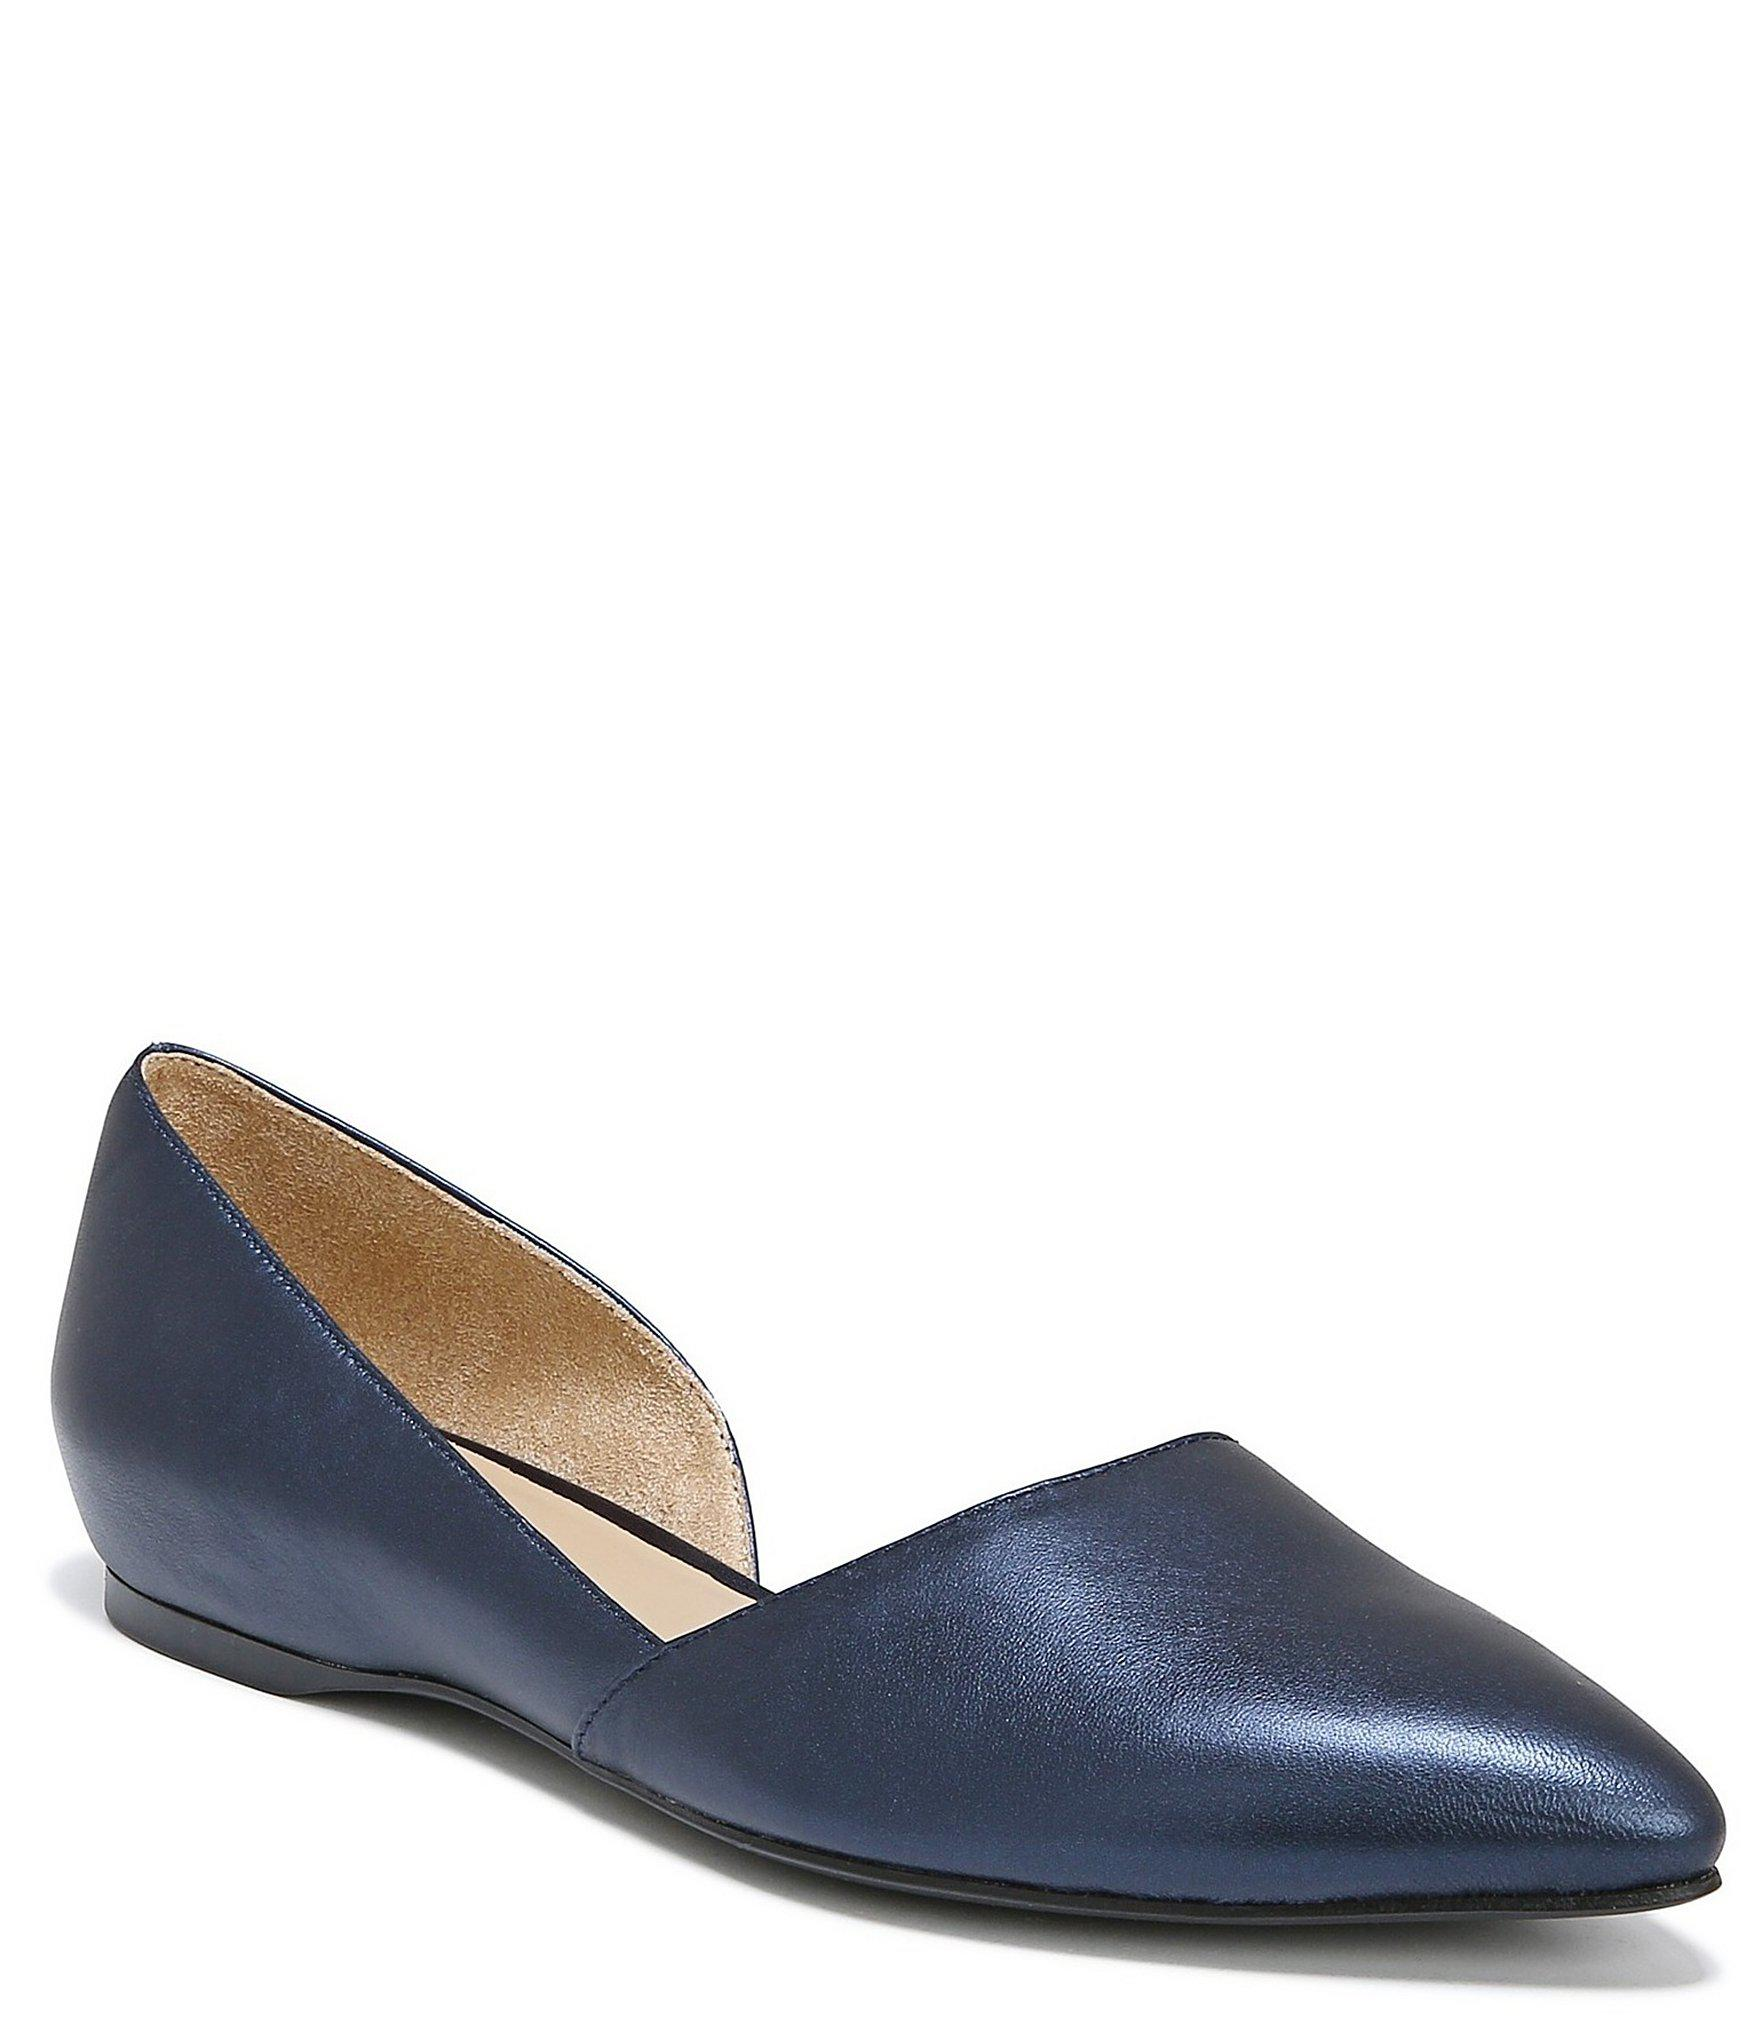 2e062bd1348f Lyst - Naturalizer Samantha Metallic Leather Flats in Blue